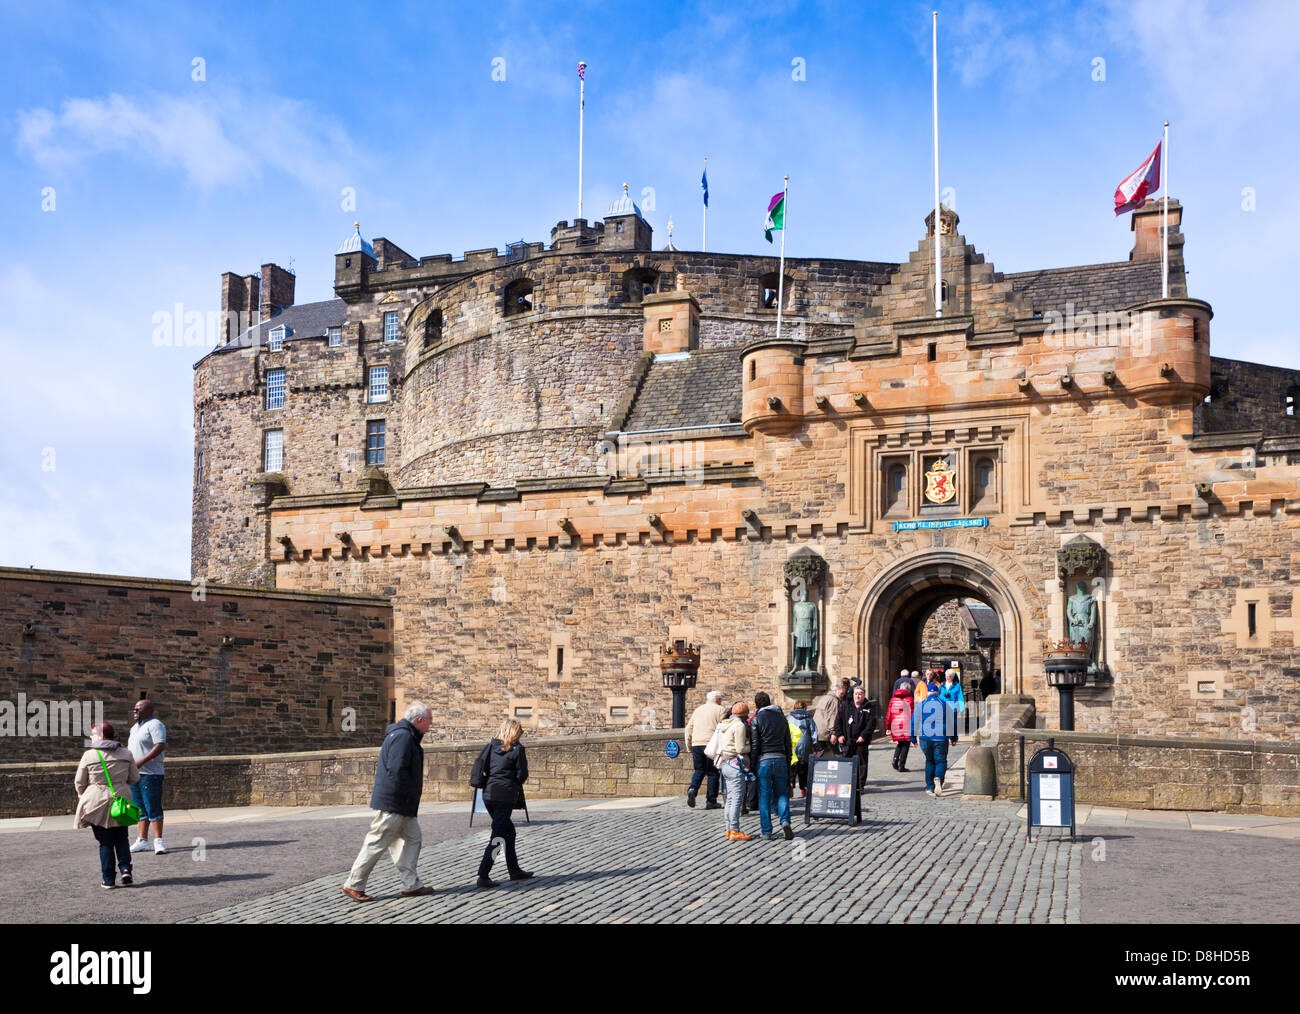 Edinburgh scotland edinburgh Tourists outside the entrance to Edinburgh Castle in the Old Town Edinburgh Midlothian - Stock Image